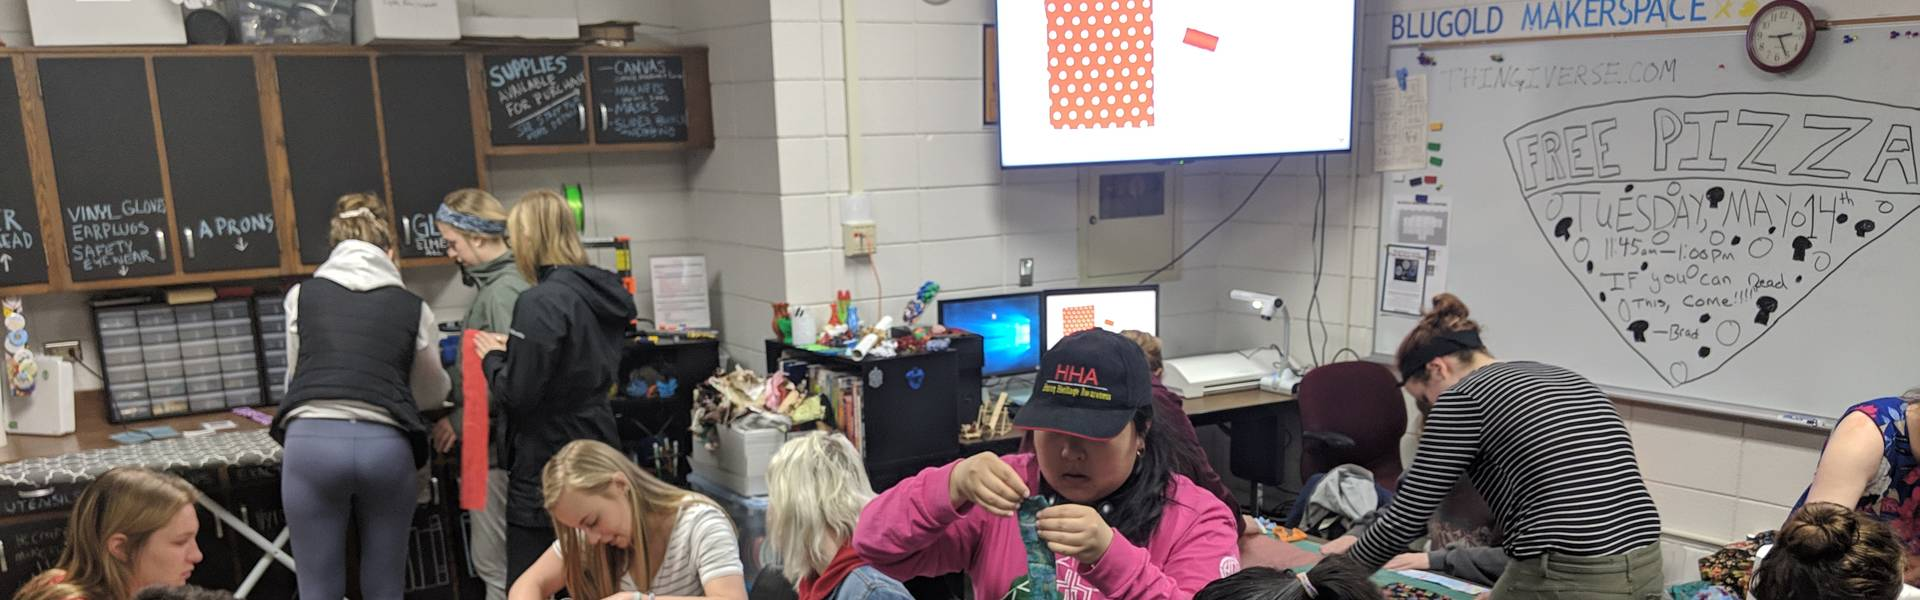 Blugold Makerspace Scrunchie Workshop